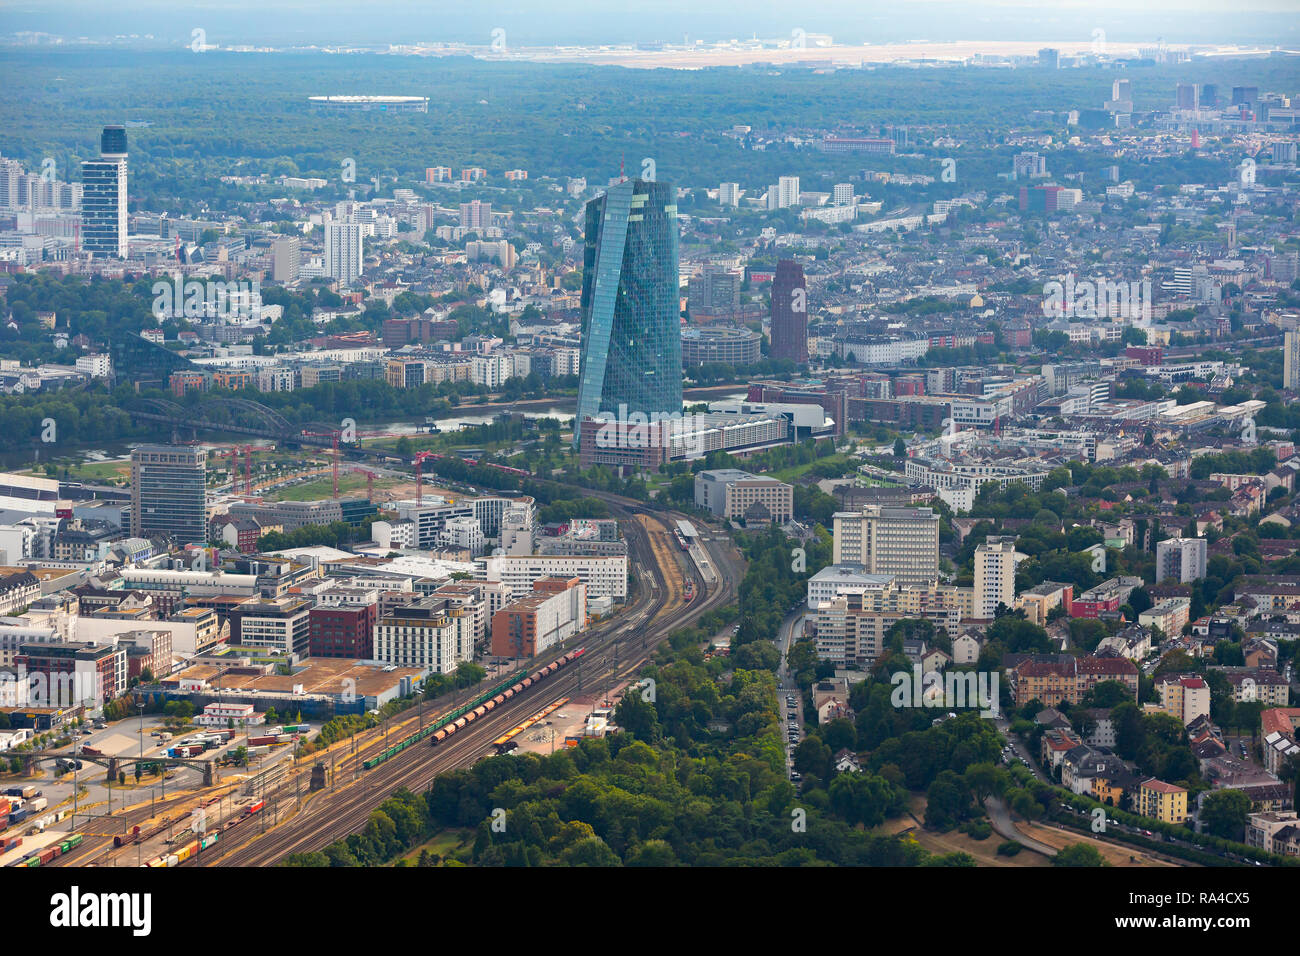 East Frankfurt, aerial view to south-west area Sachsenhausen district and Frankfurt airport in the background. European Central Bank in foreground. - Stock Image